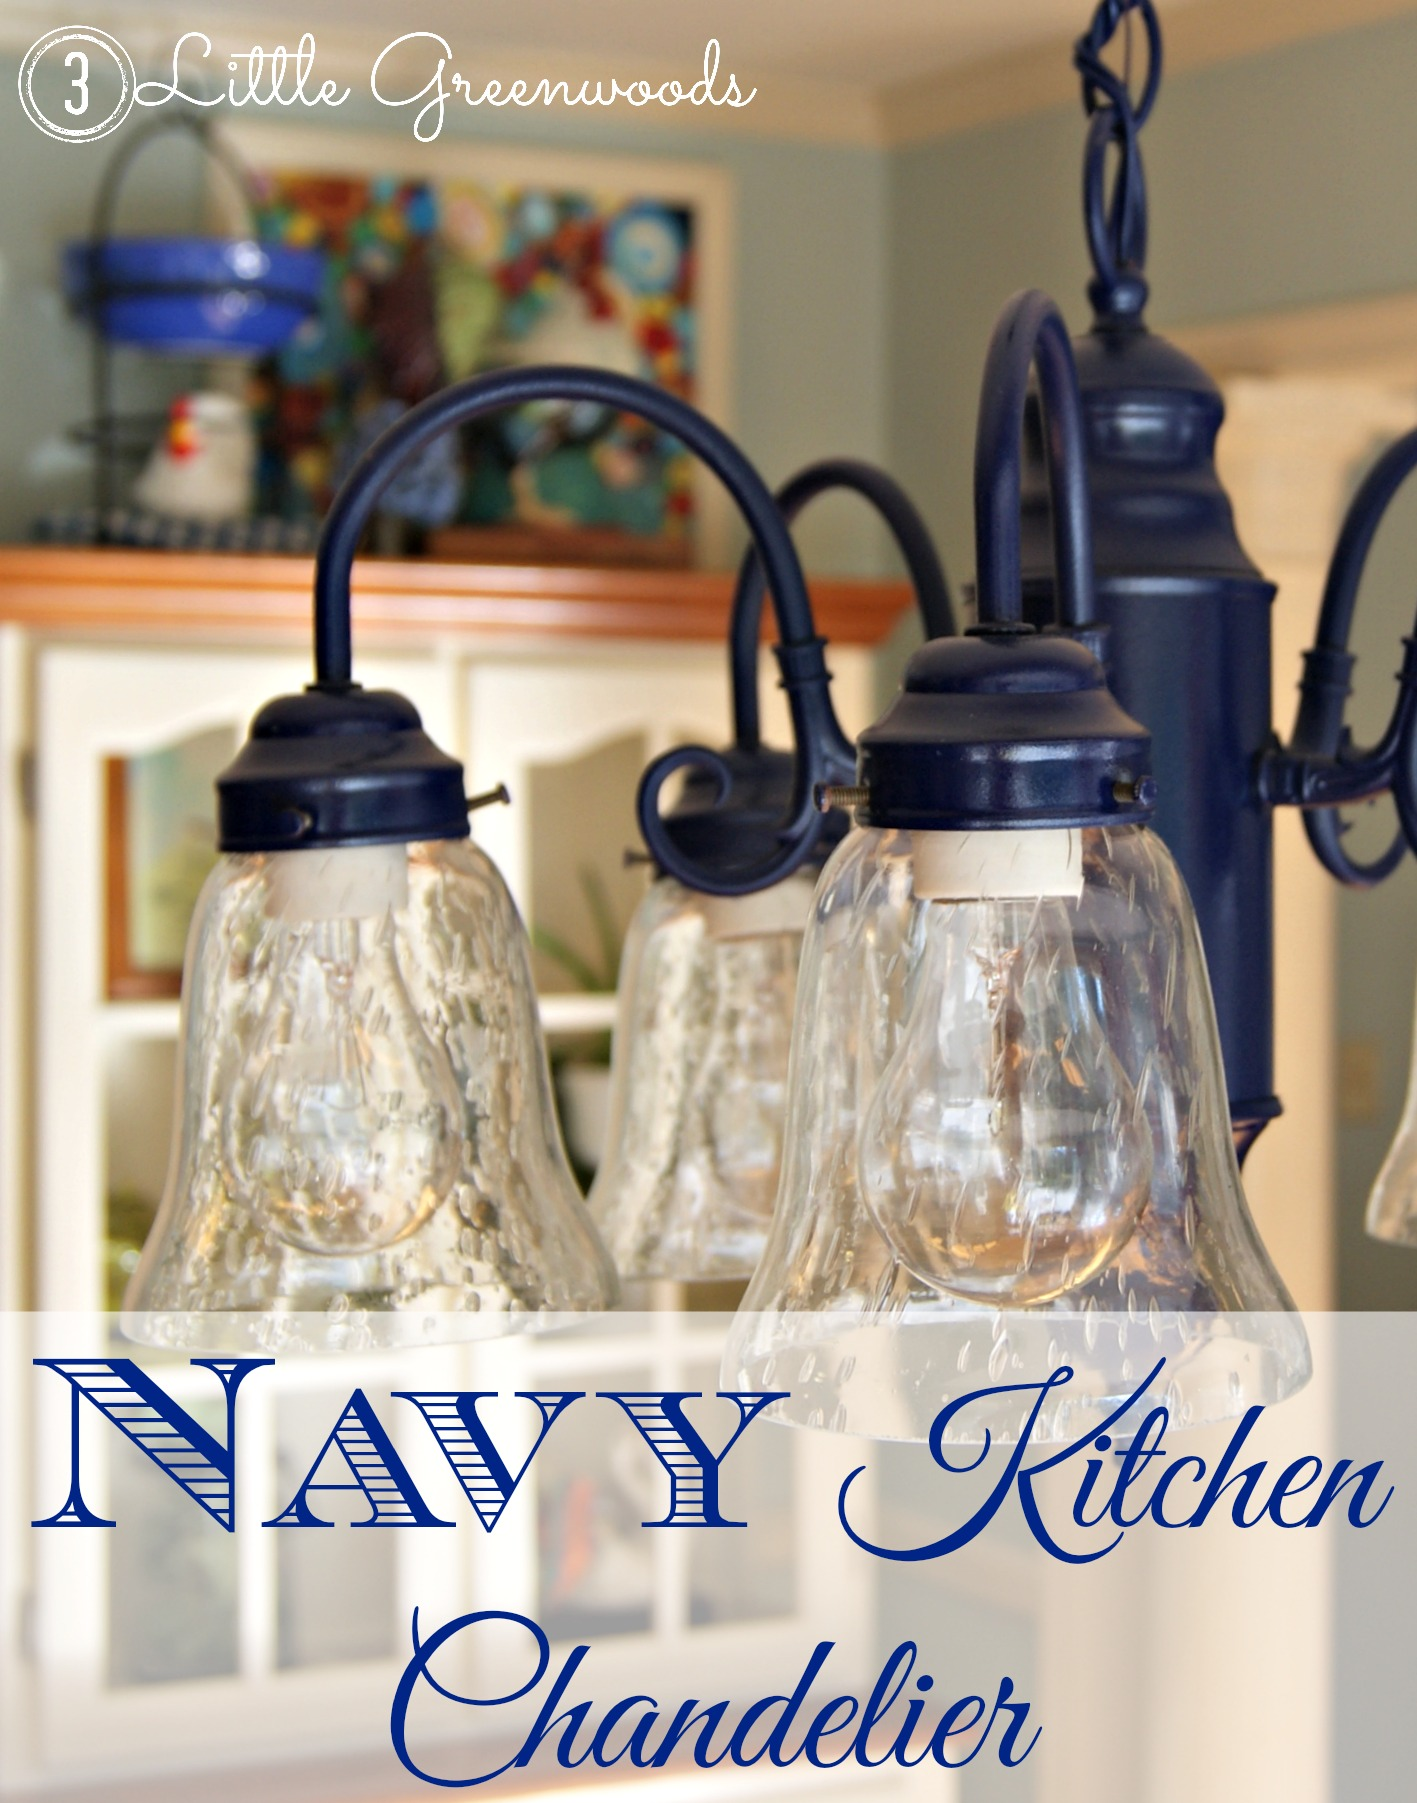 Add a punch of color with this DIY light fixture update! Navy Chandelier https://www.3littlegreenwoods.com